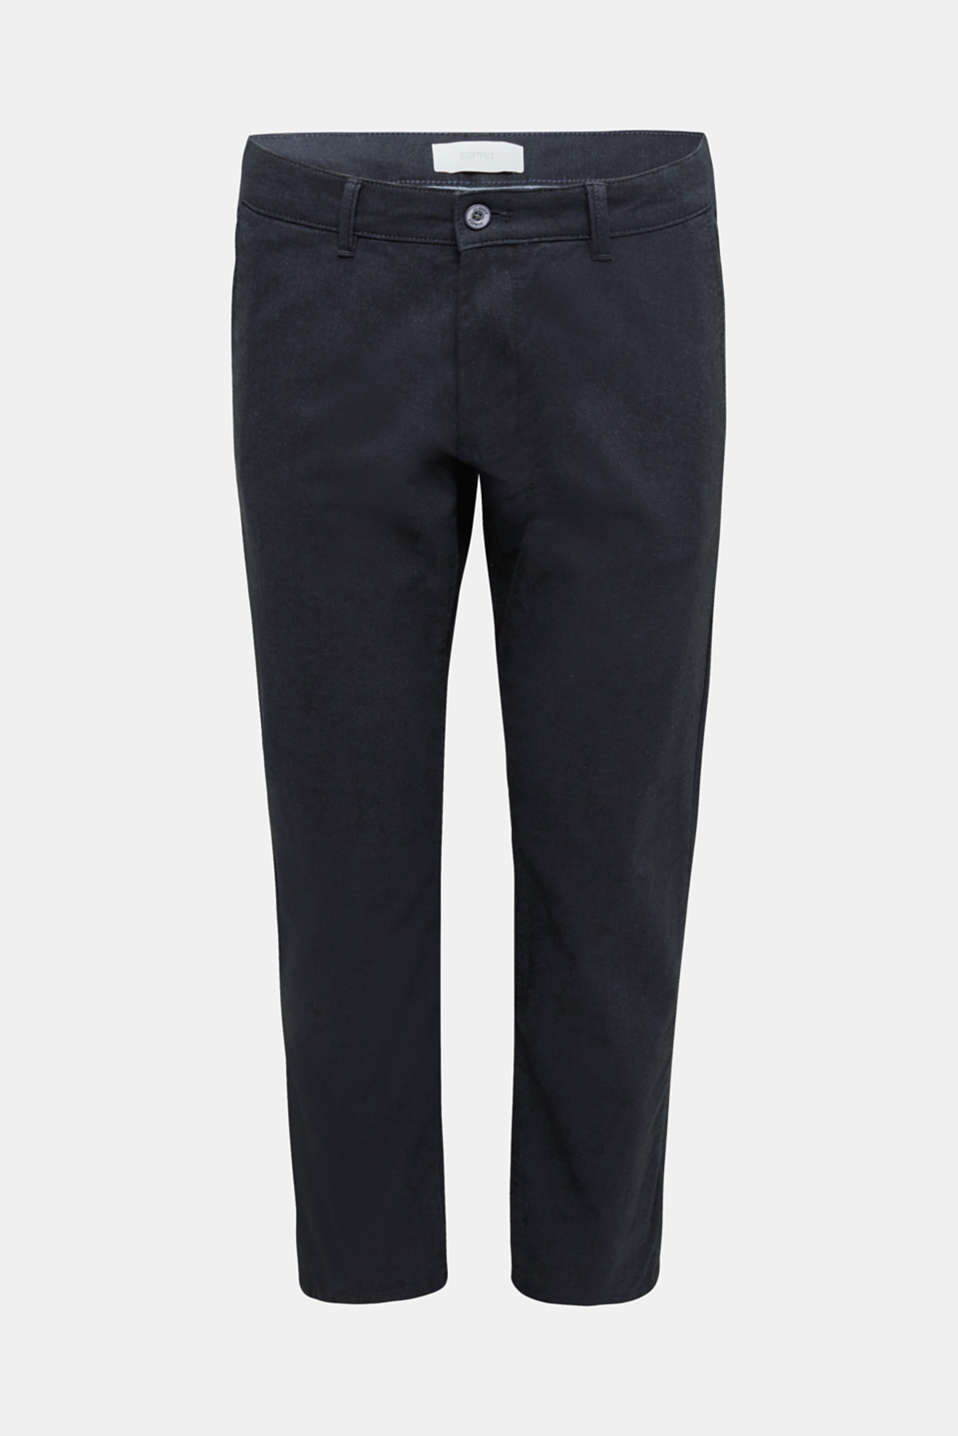 Stretch twill trousers with a belt, NAVY, detail image number 5